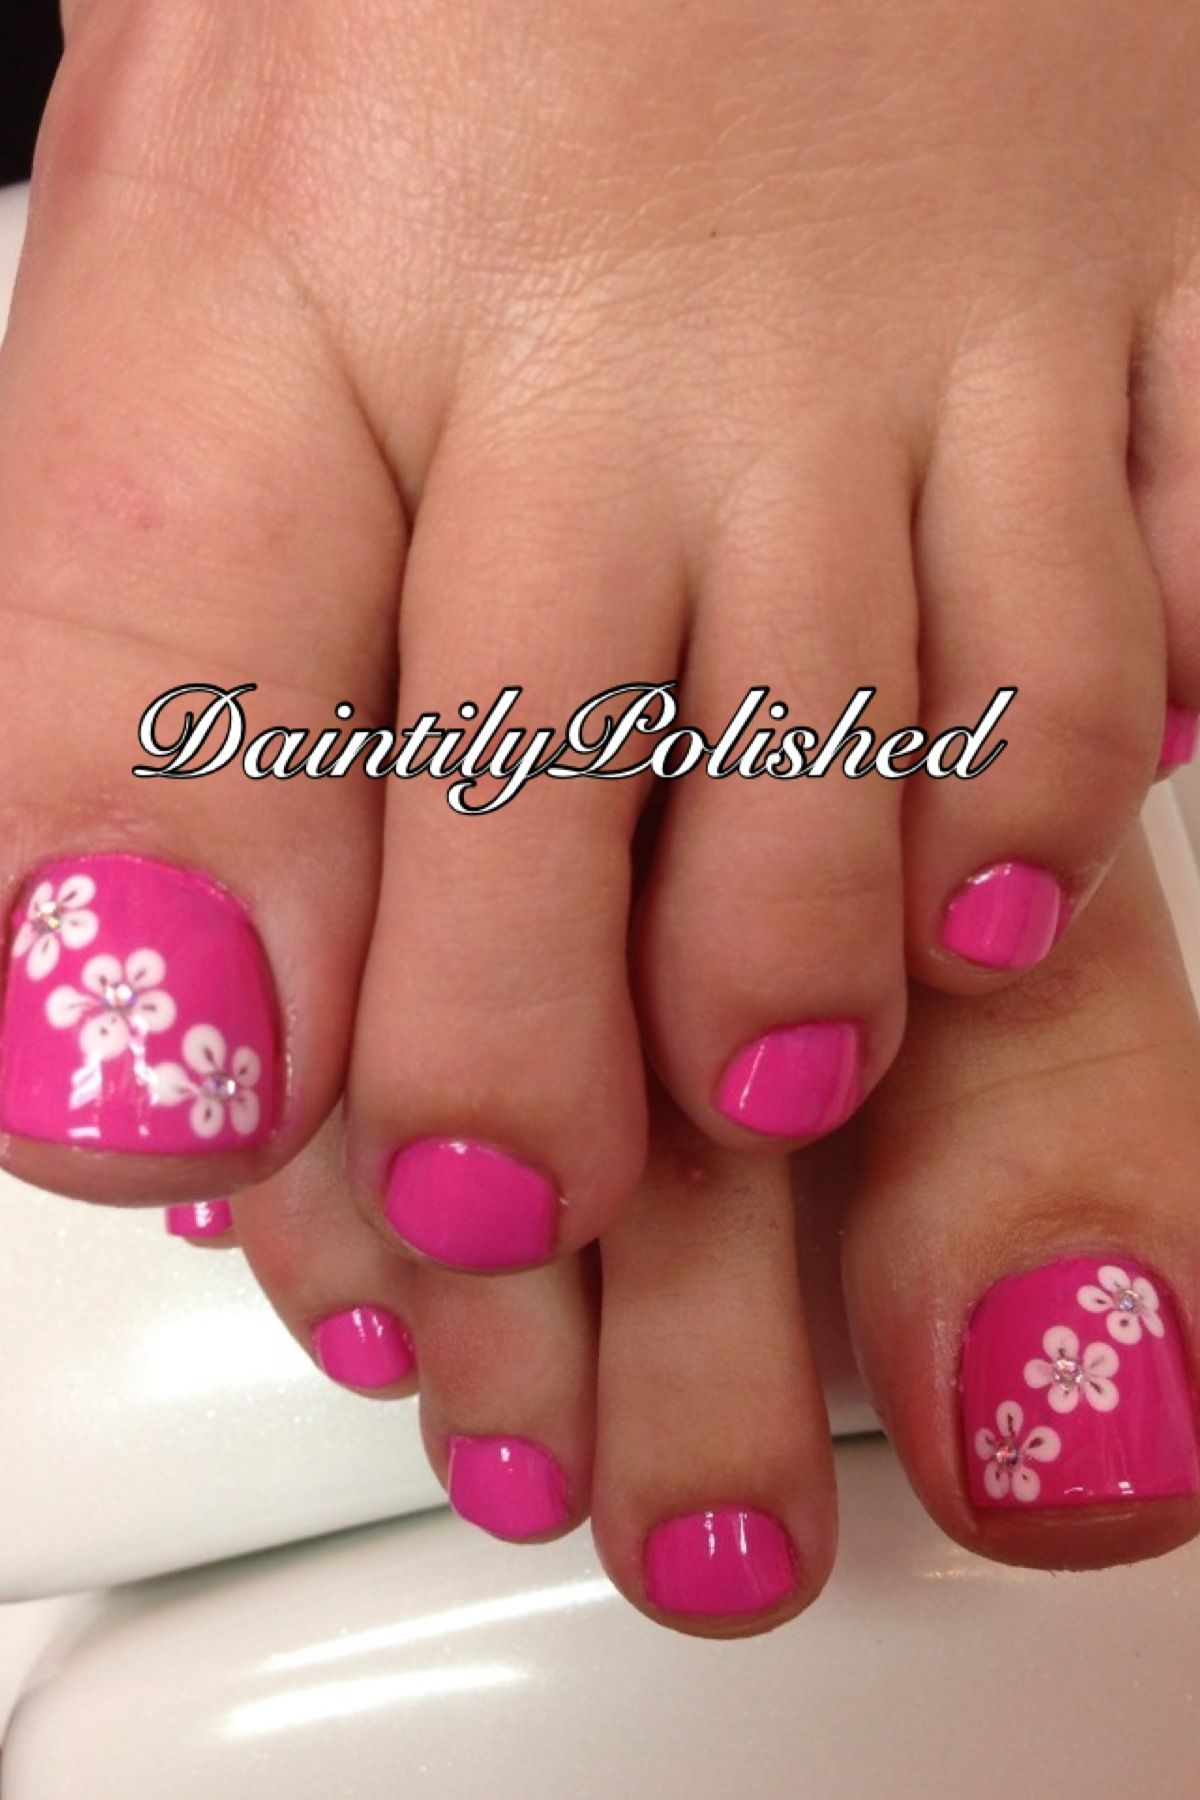 Pink - White - Flowers - Toe Nail Design | Toenail Art | Pinterest ...